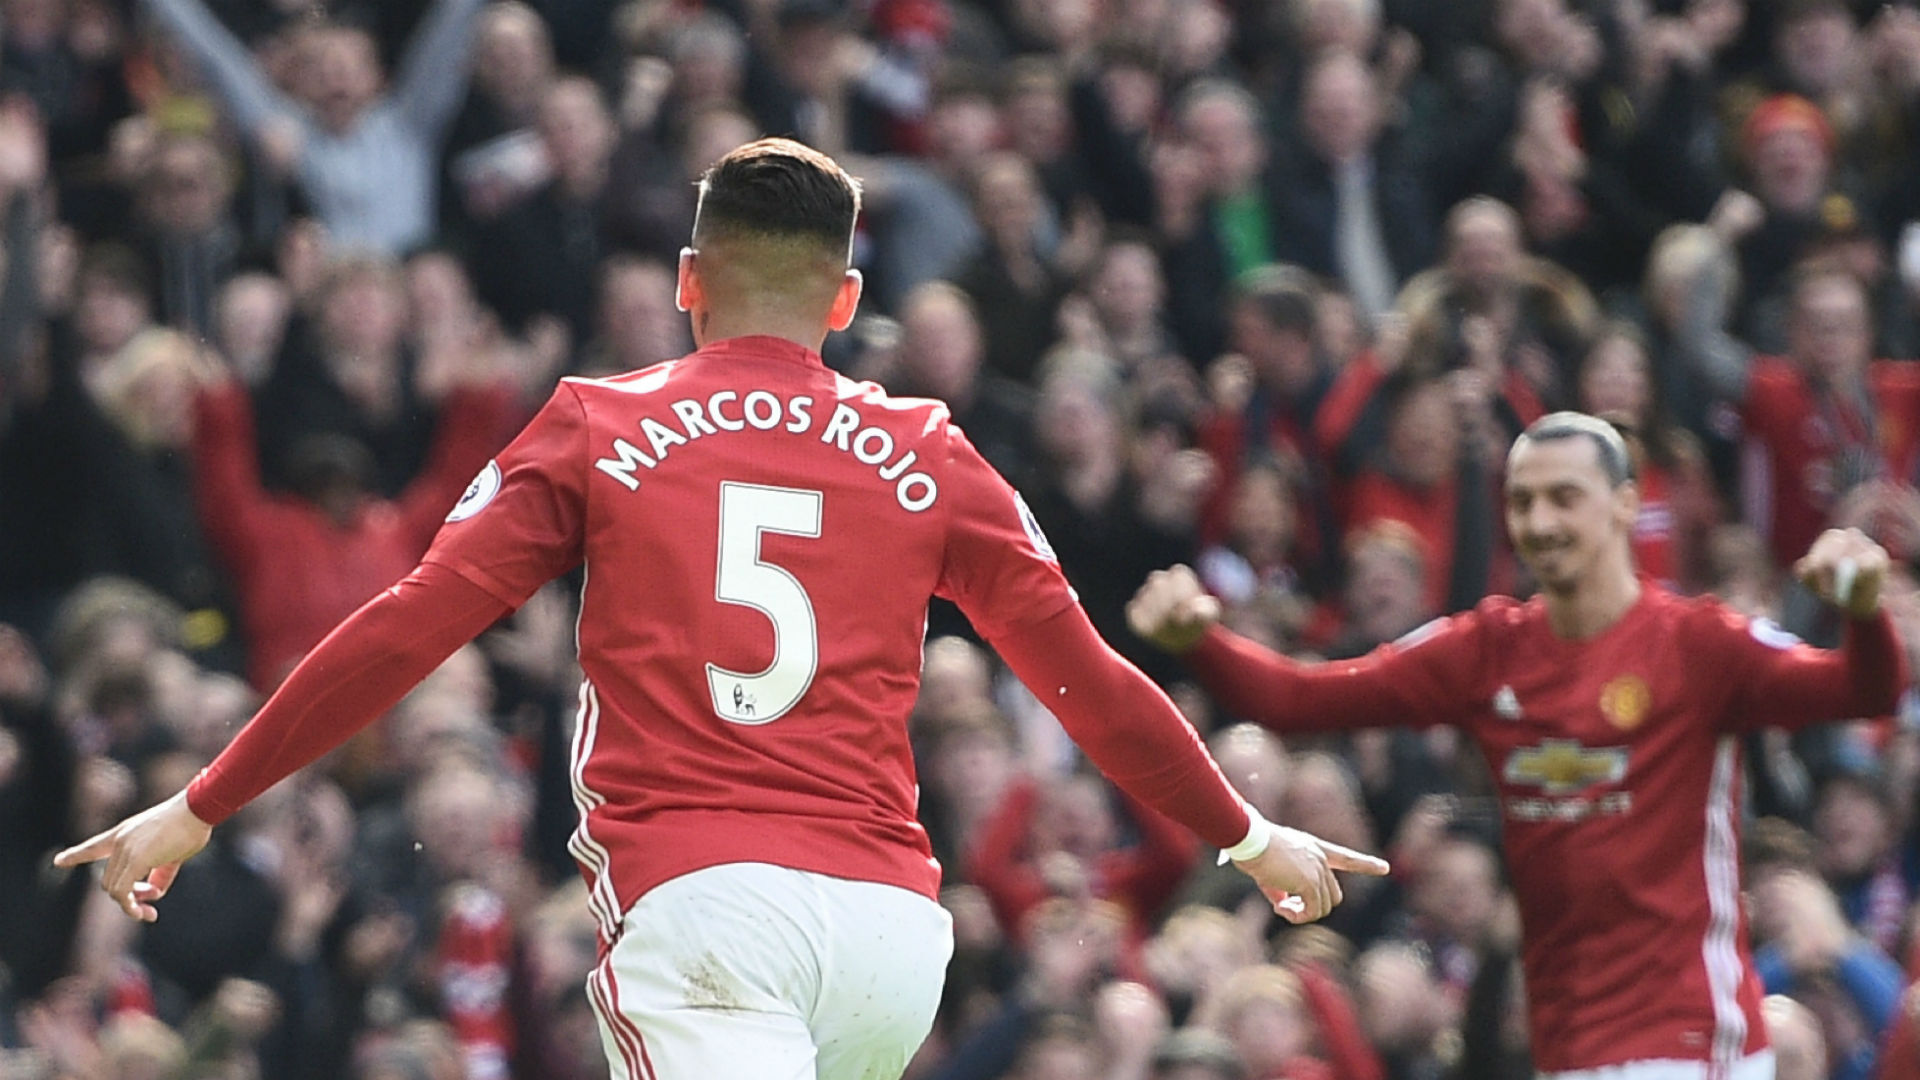 Marcos Rojo Premier League Manchester United v Bournemouth